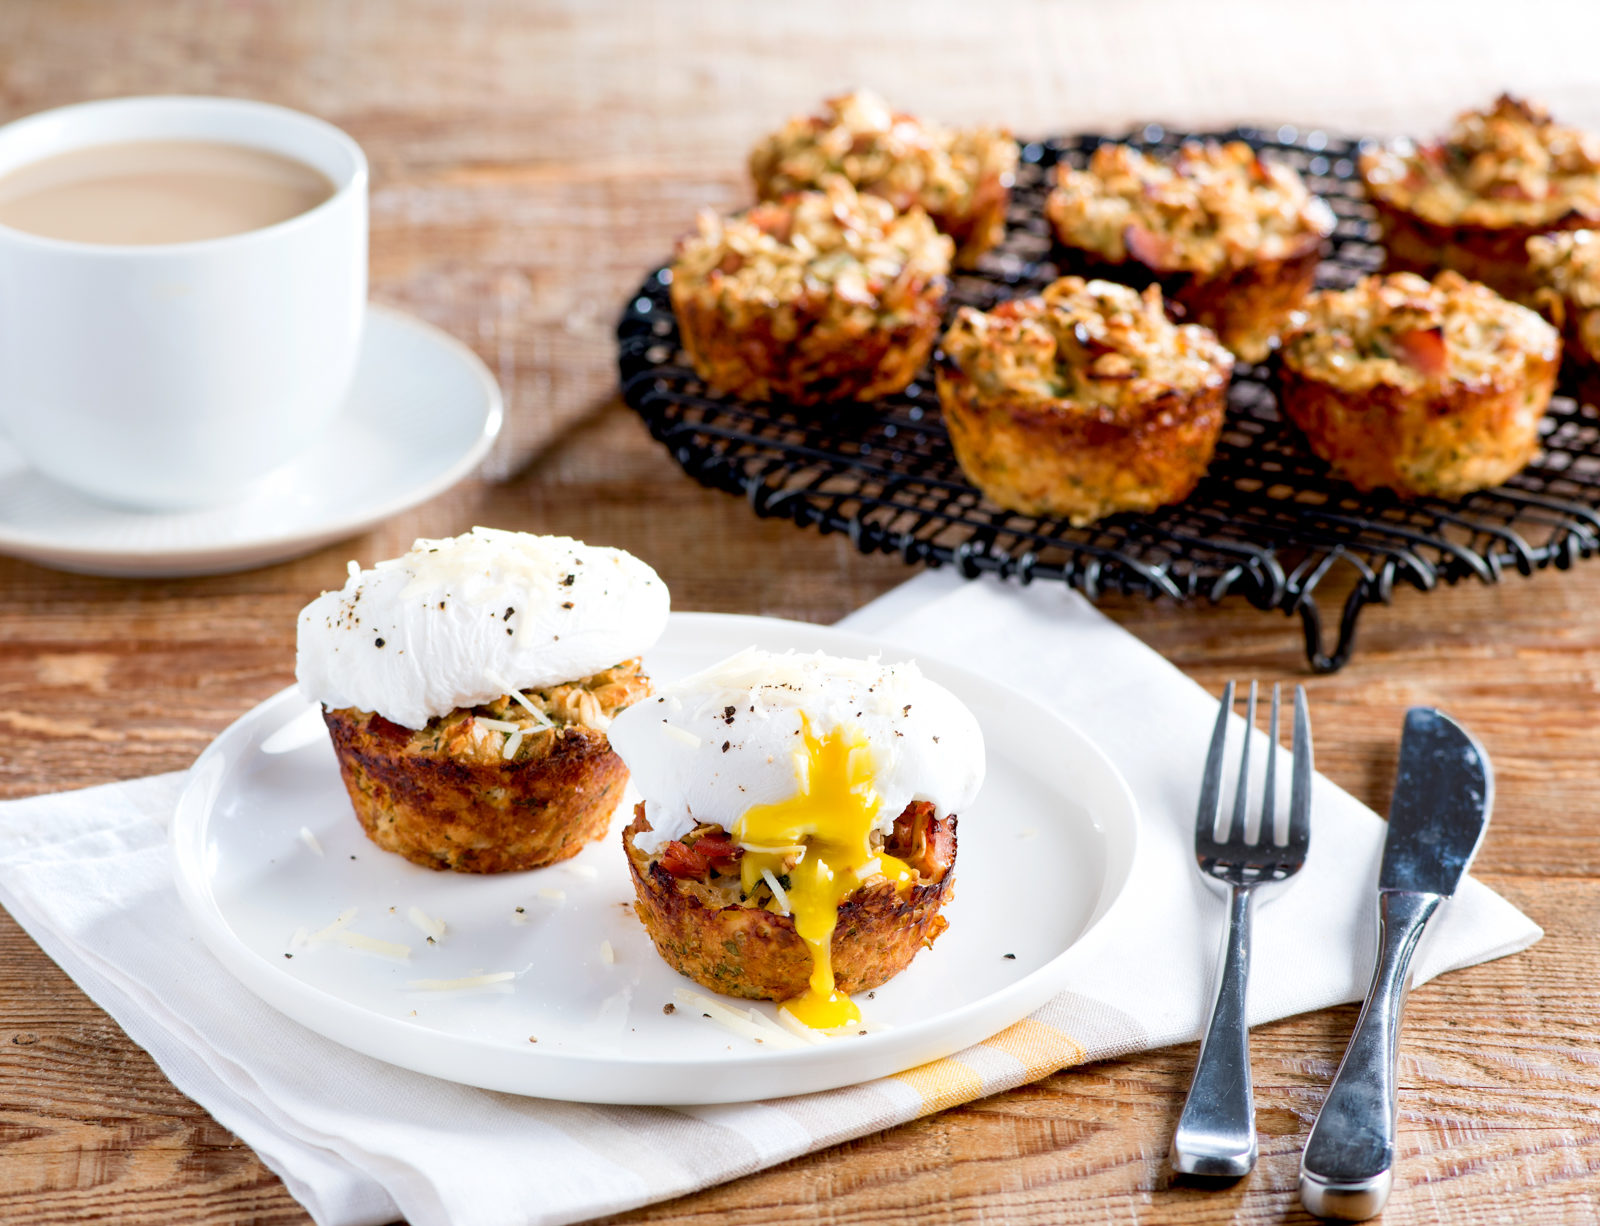 Savoury Oatmeal Breakfast Cups with Poached Eggs